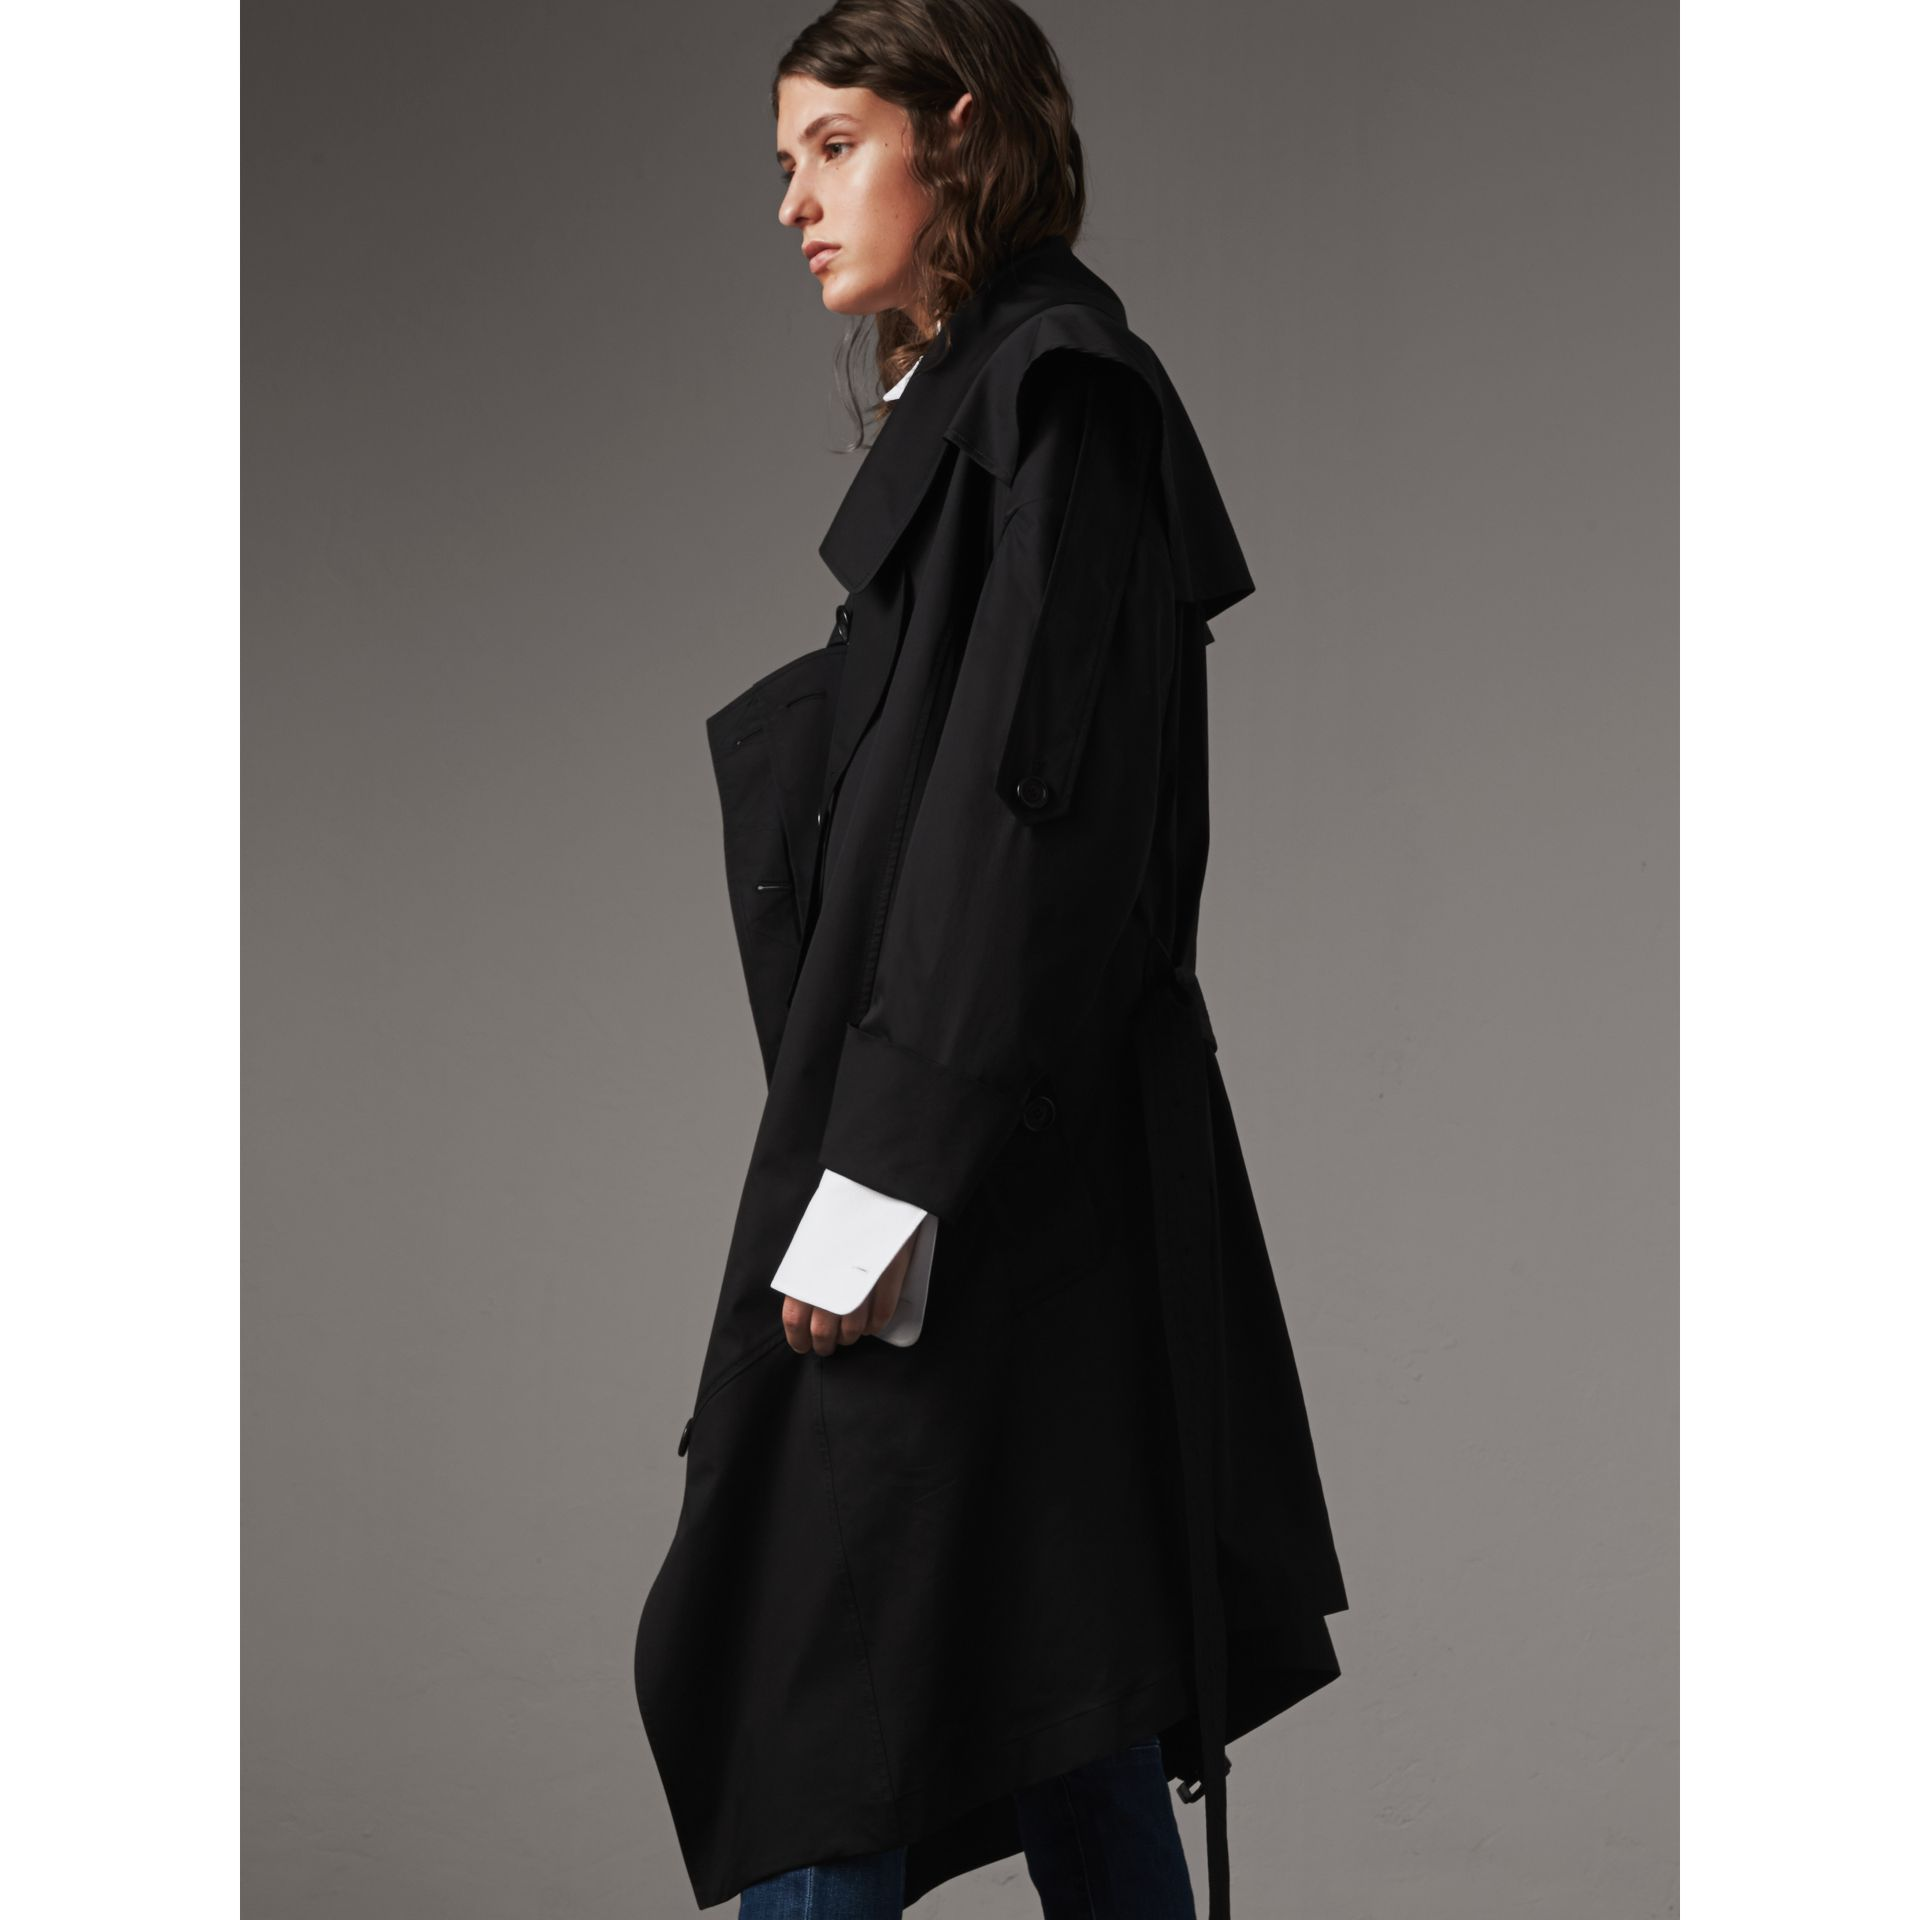 Cotton Asymmetric Trench Coat in Black - Women | Burberry Singapore - gallery image 6